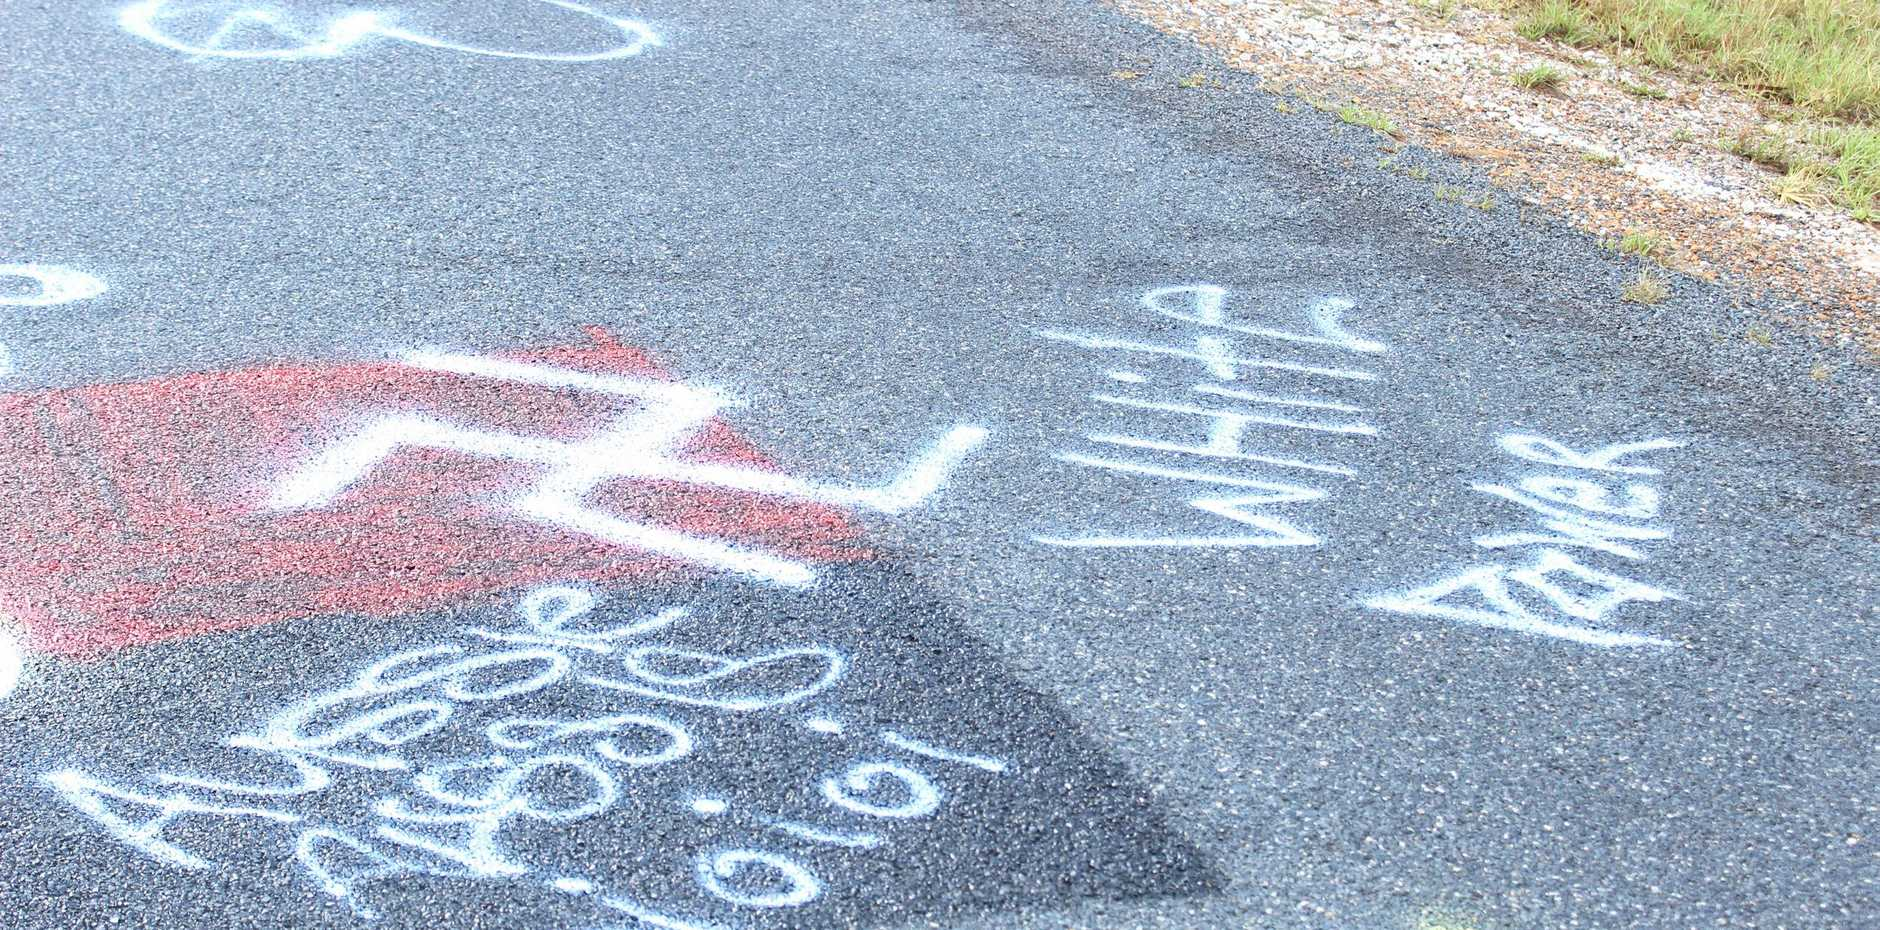 Racist graffiti was sprayed over the Orara way just outside Grafton.